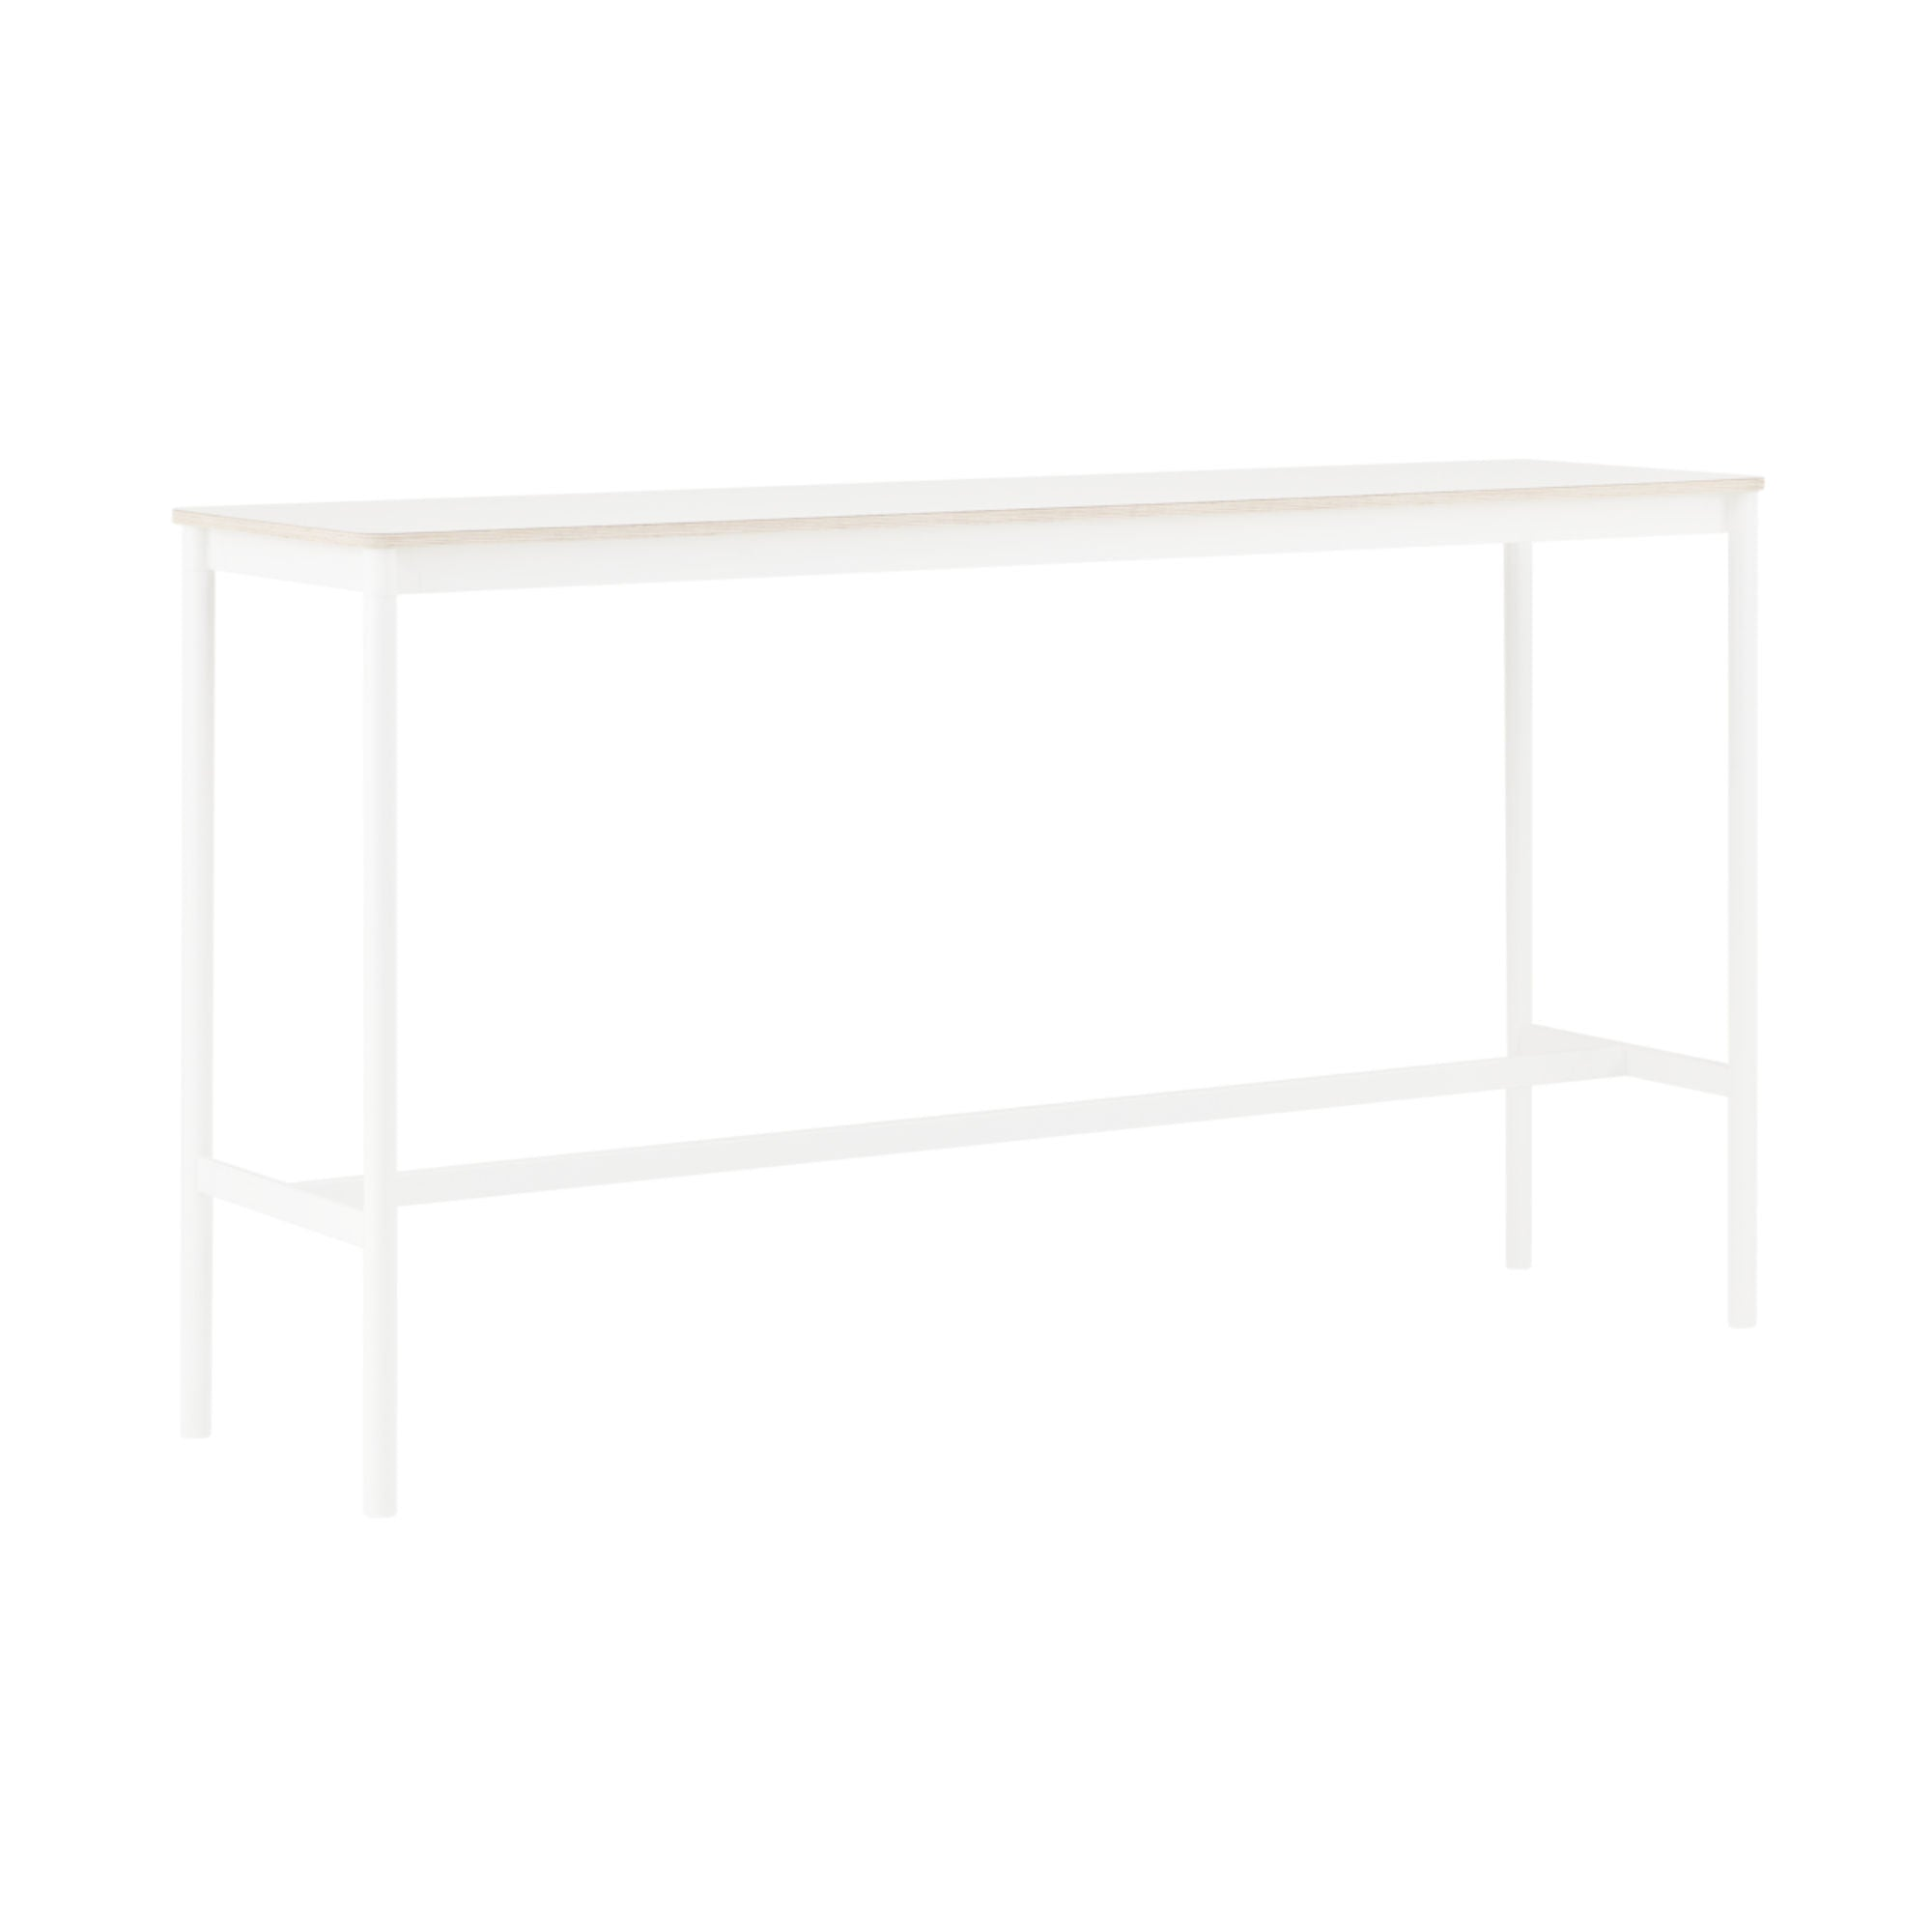 Muuto Base High Table 190x50 h:105cm , White Laminate/Plywood/White